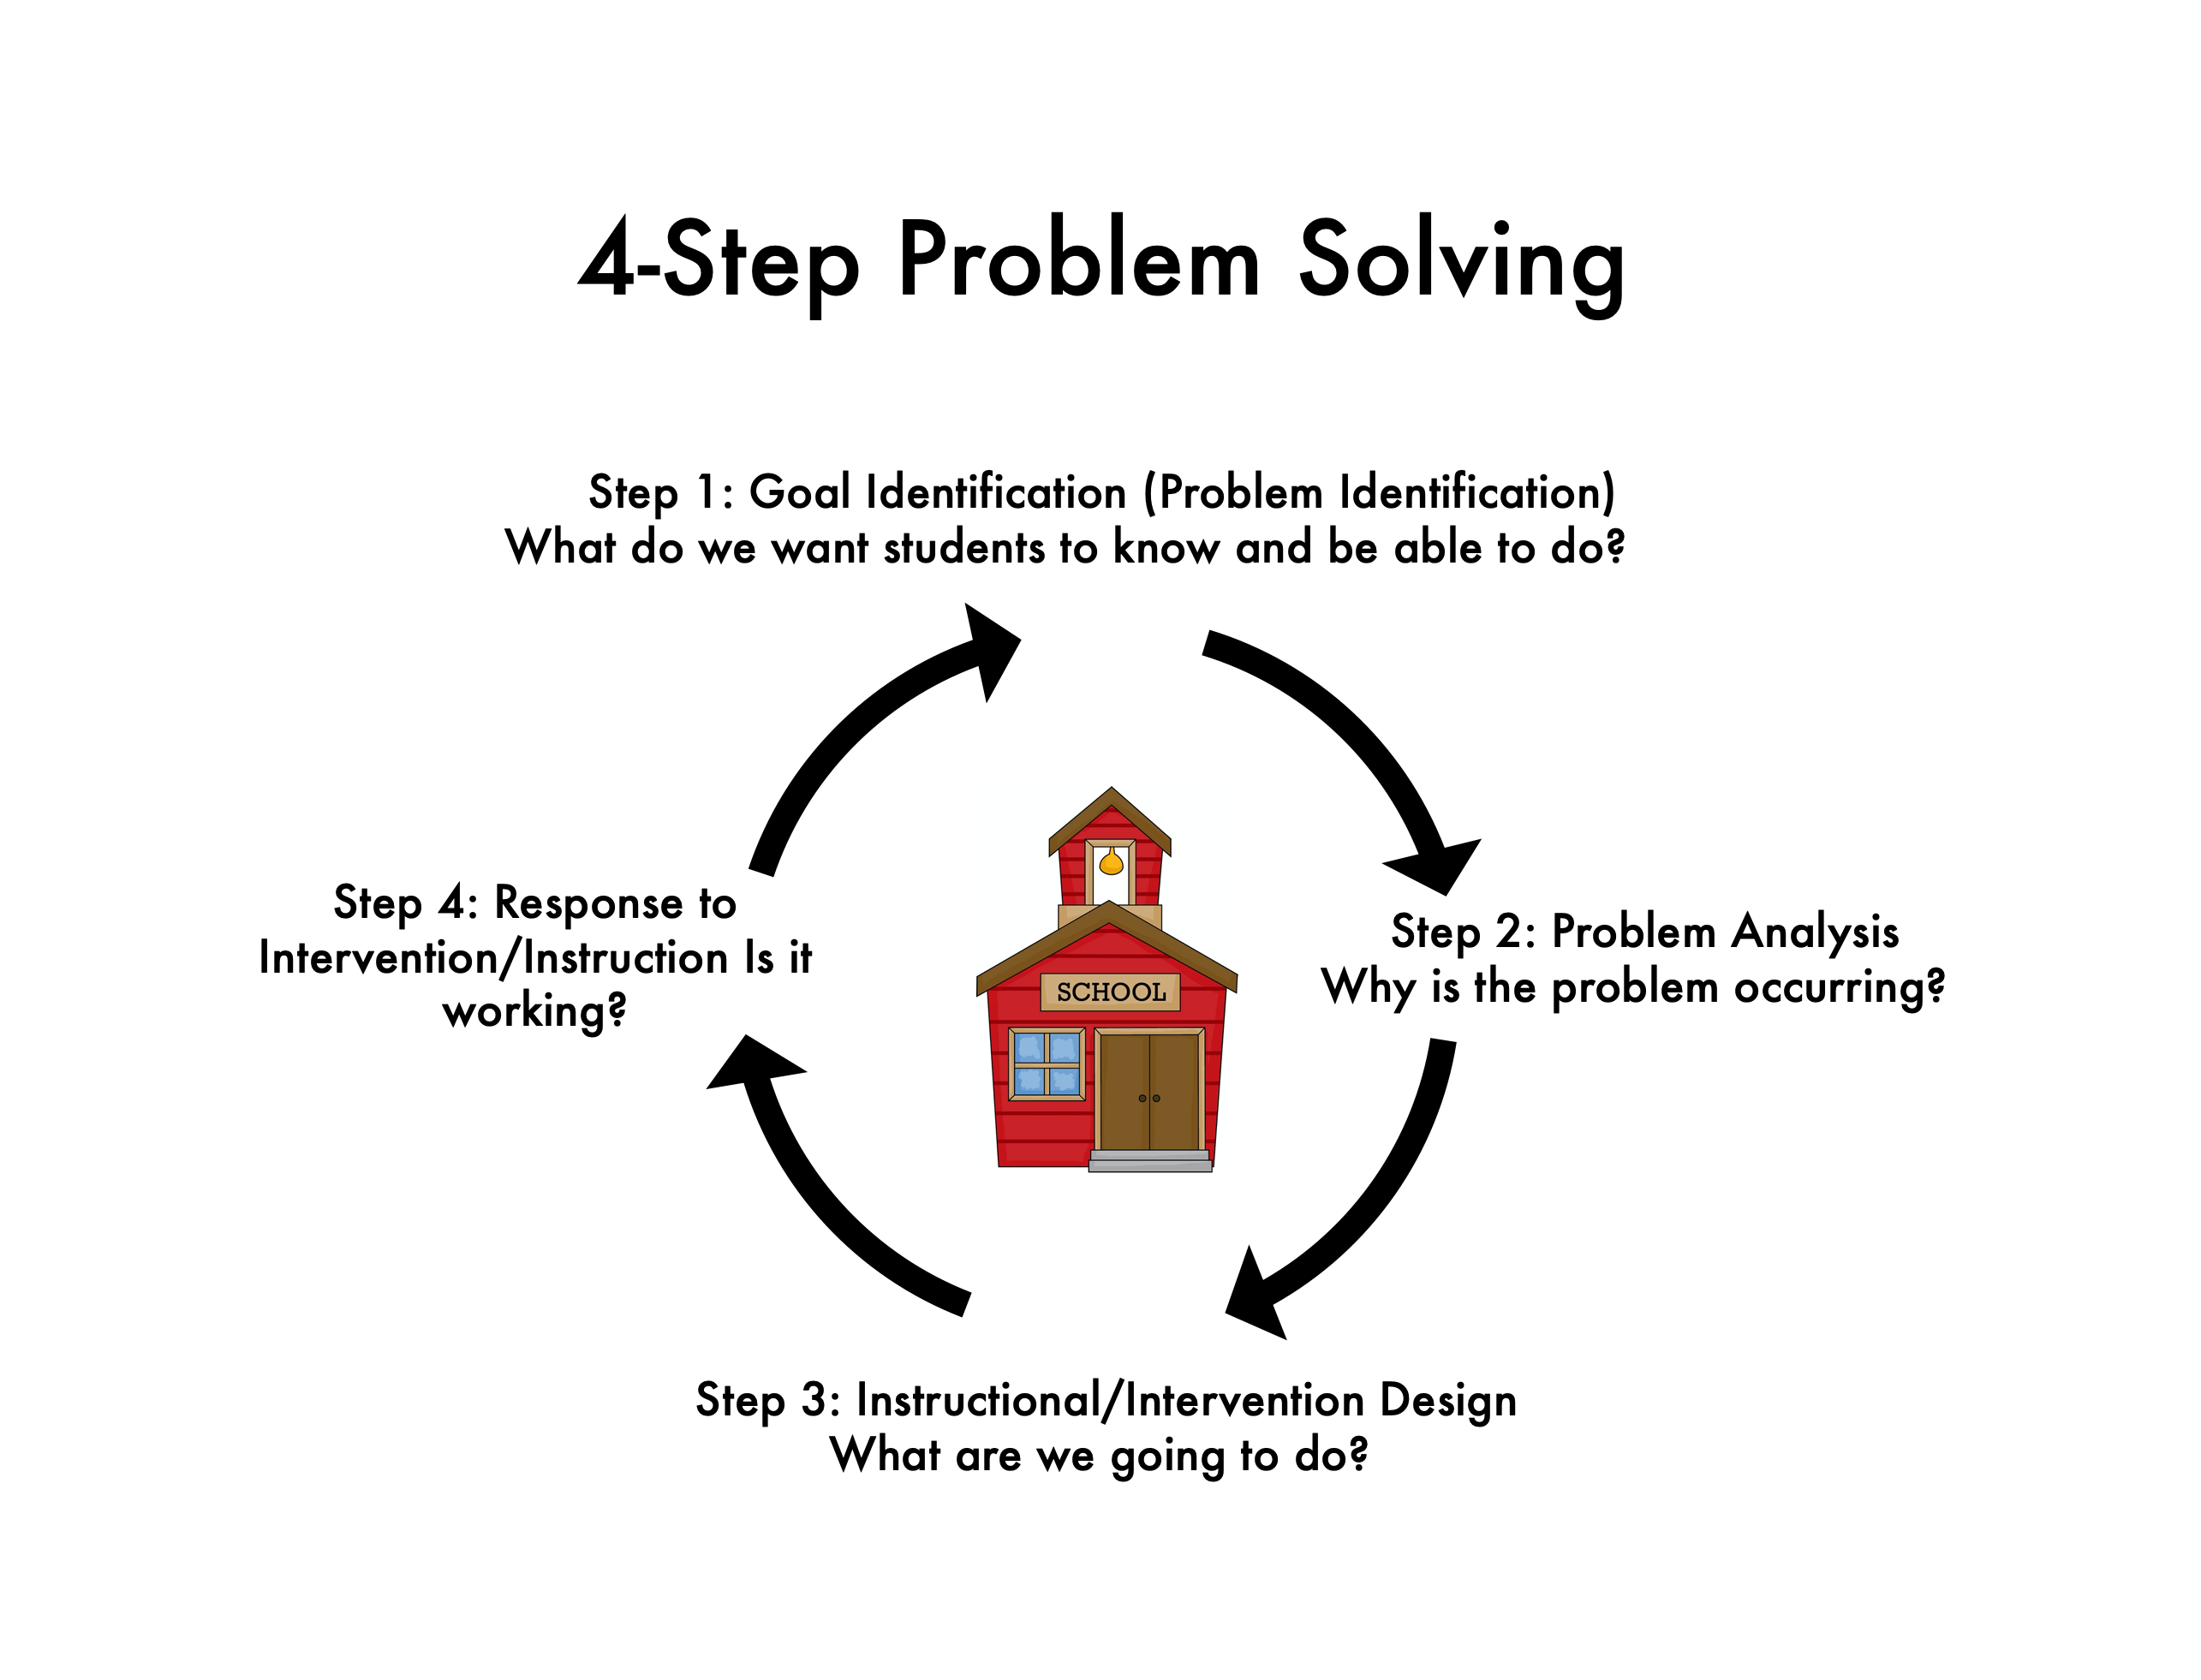 An Overview of 4-Step Problem Solving